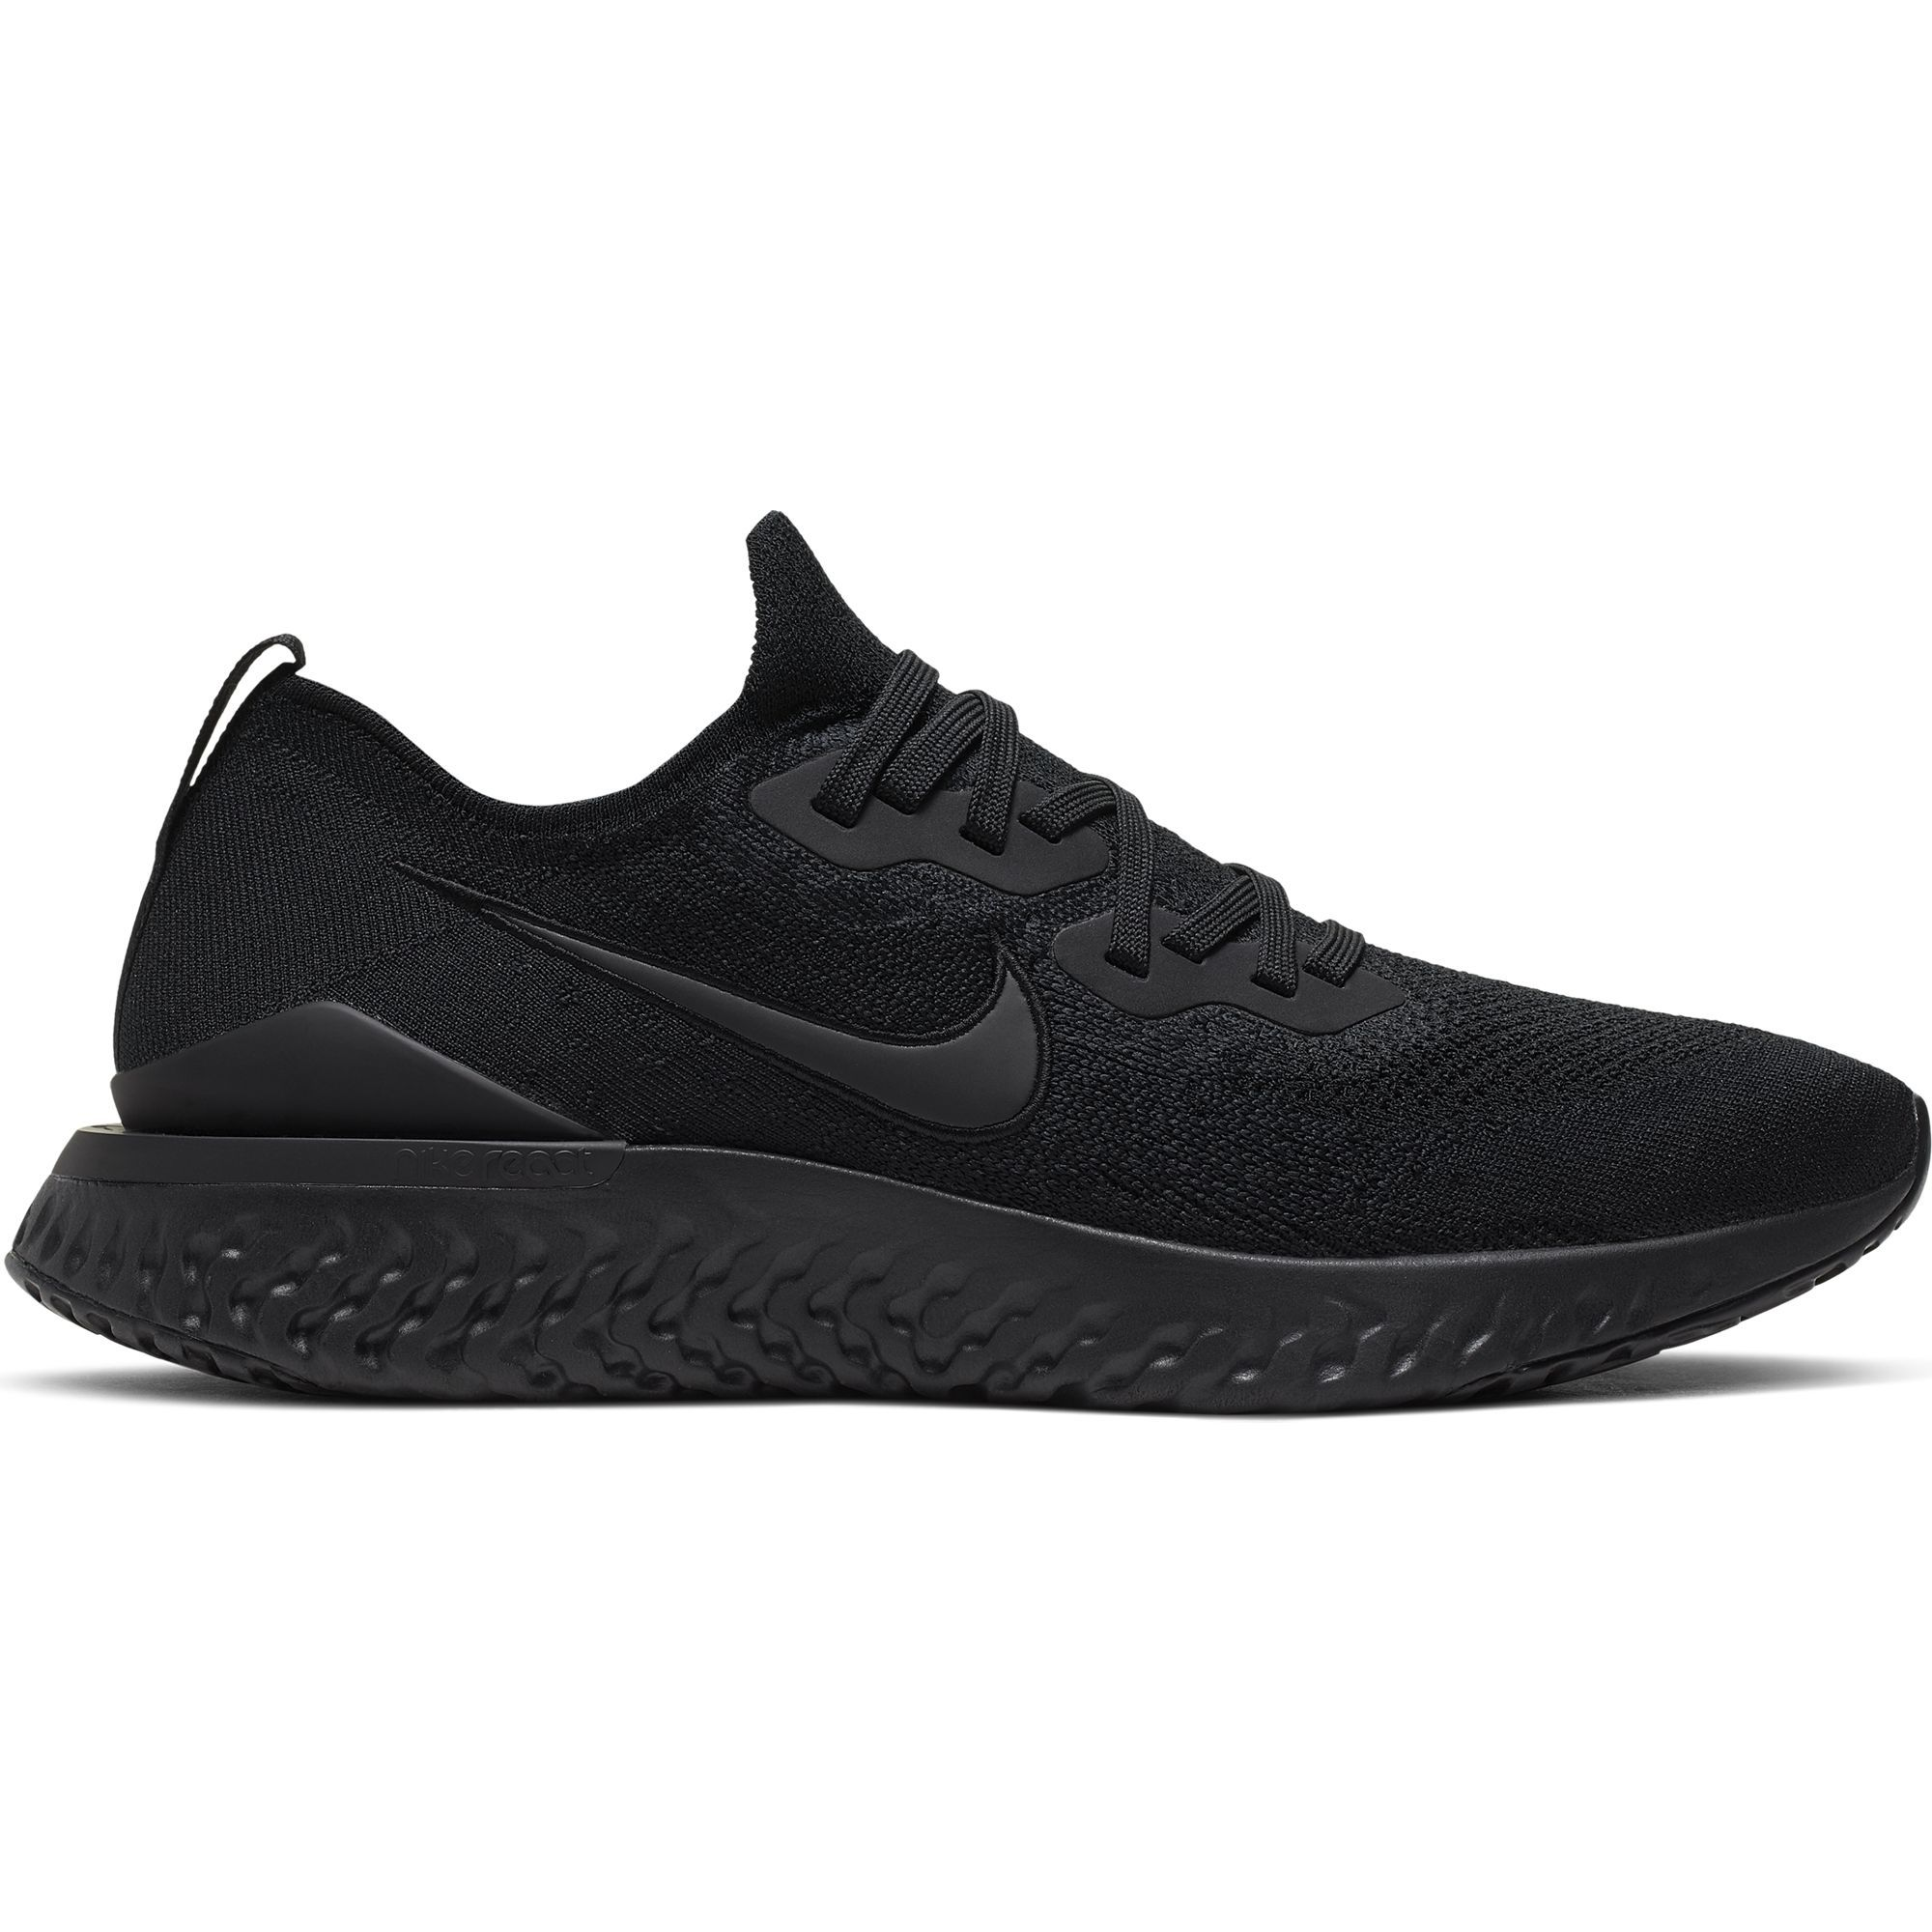 Nike Epic React Flyknit 2 in Schwarz